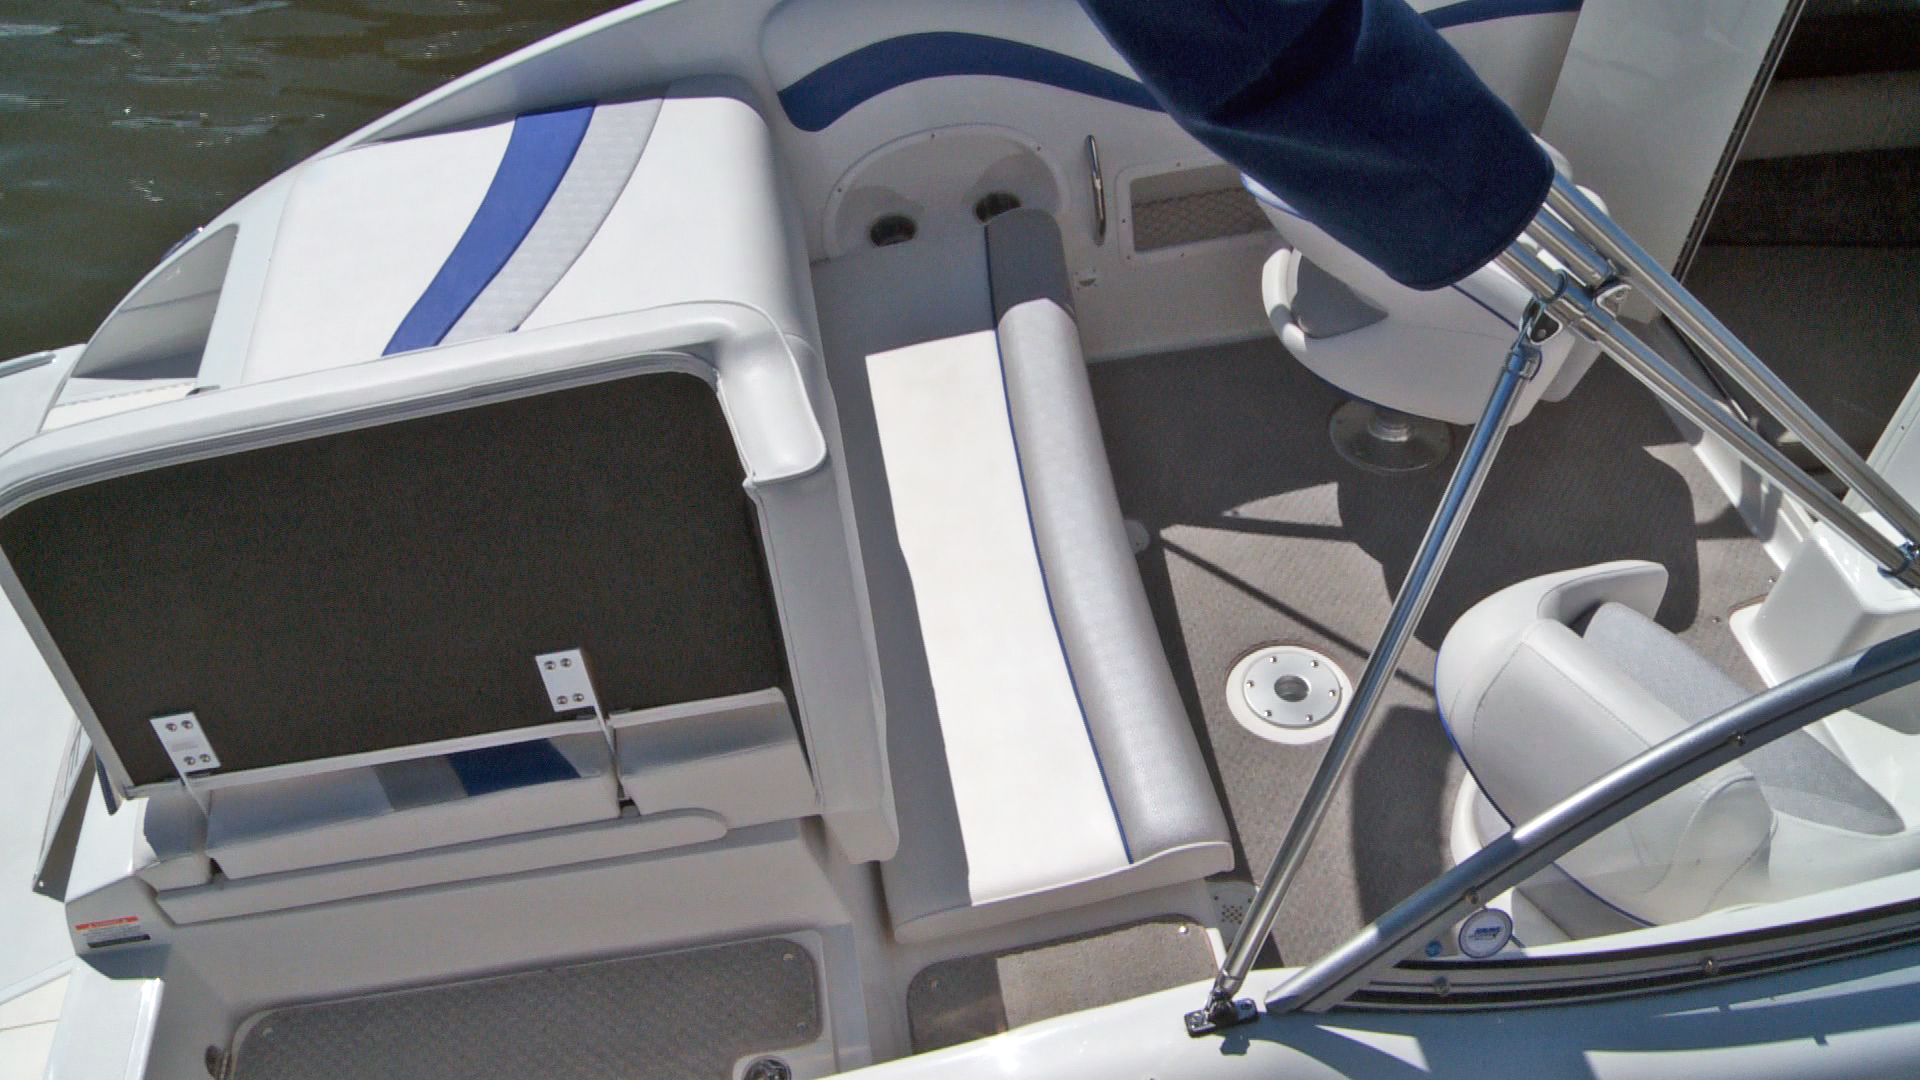 USED REVIEW: 2010 Ebbtide 224 SE | Boats and Places Magazine